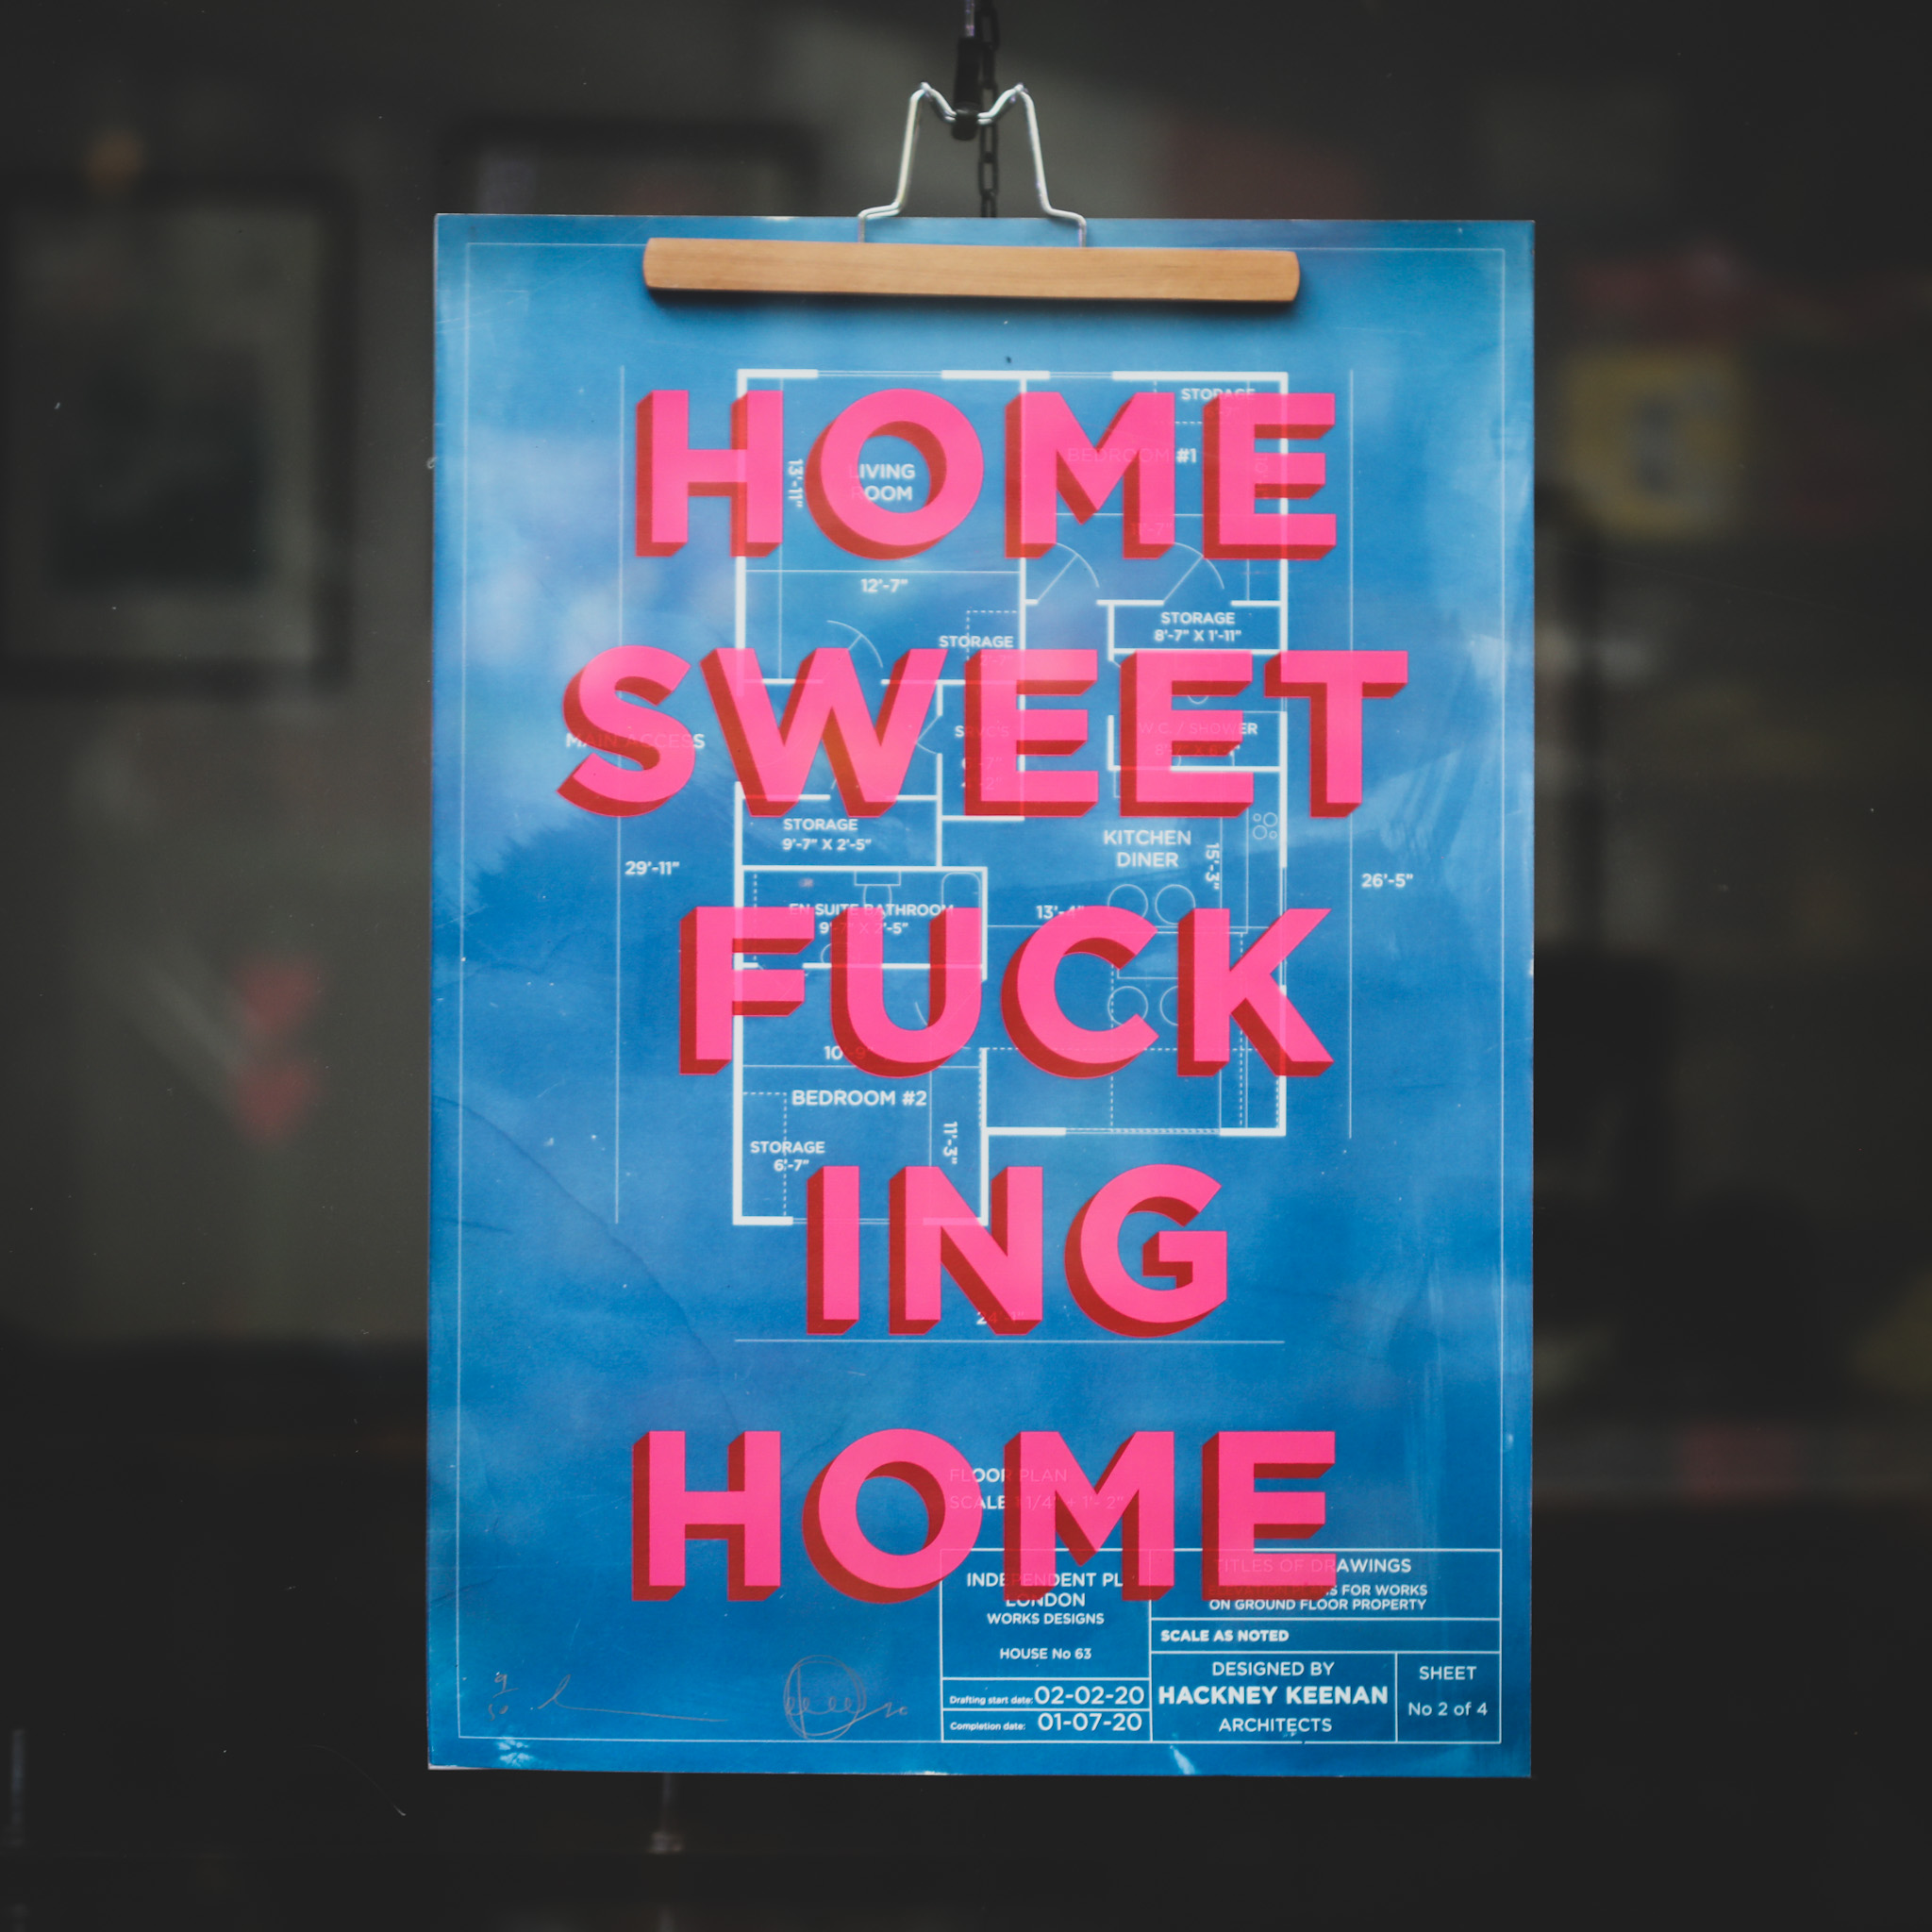 9D199D05 C055 437D 86DF 158373FACB01 - Home Sweet Fucking Home by Craig Keenan and Dave Buonaguidi